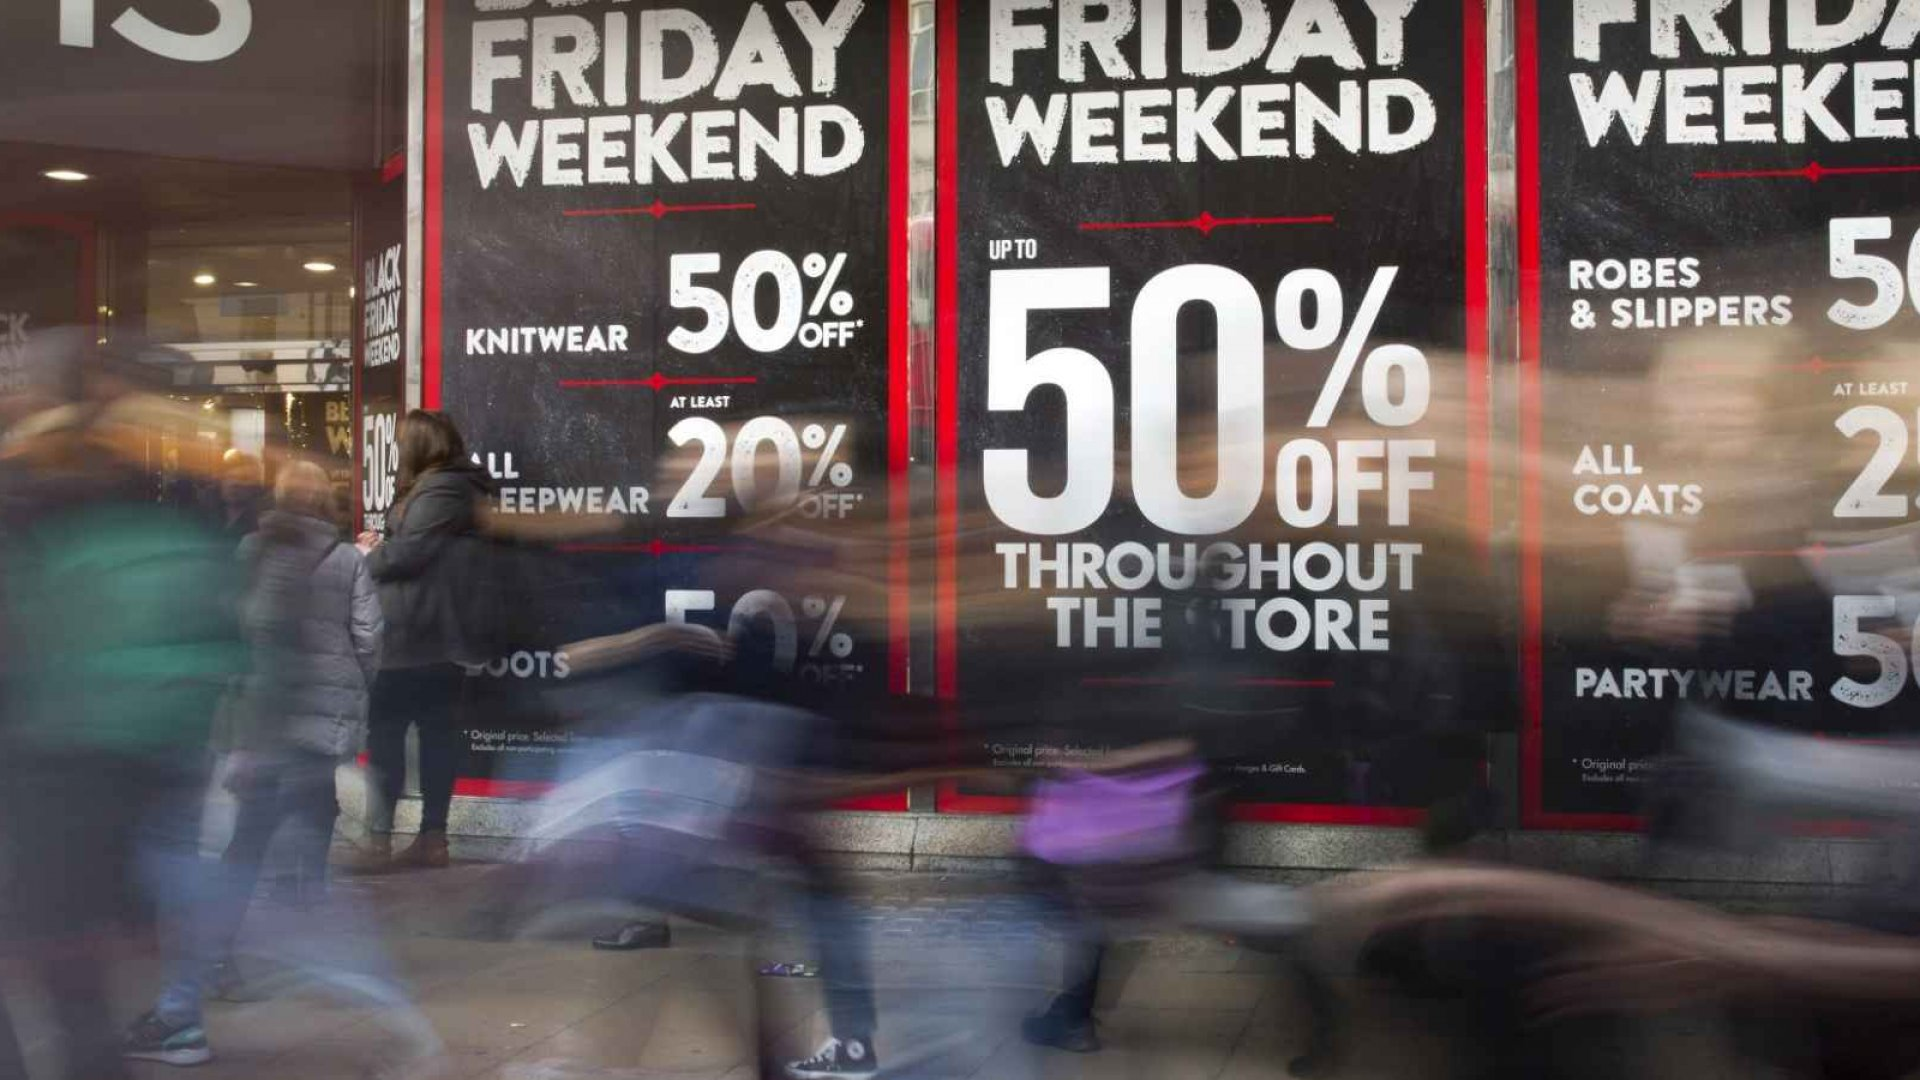 Skip Black Friday! Get all your shopping done at once! AFP Photo / Justin Tallis